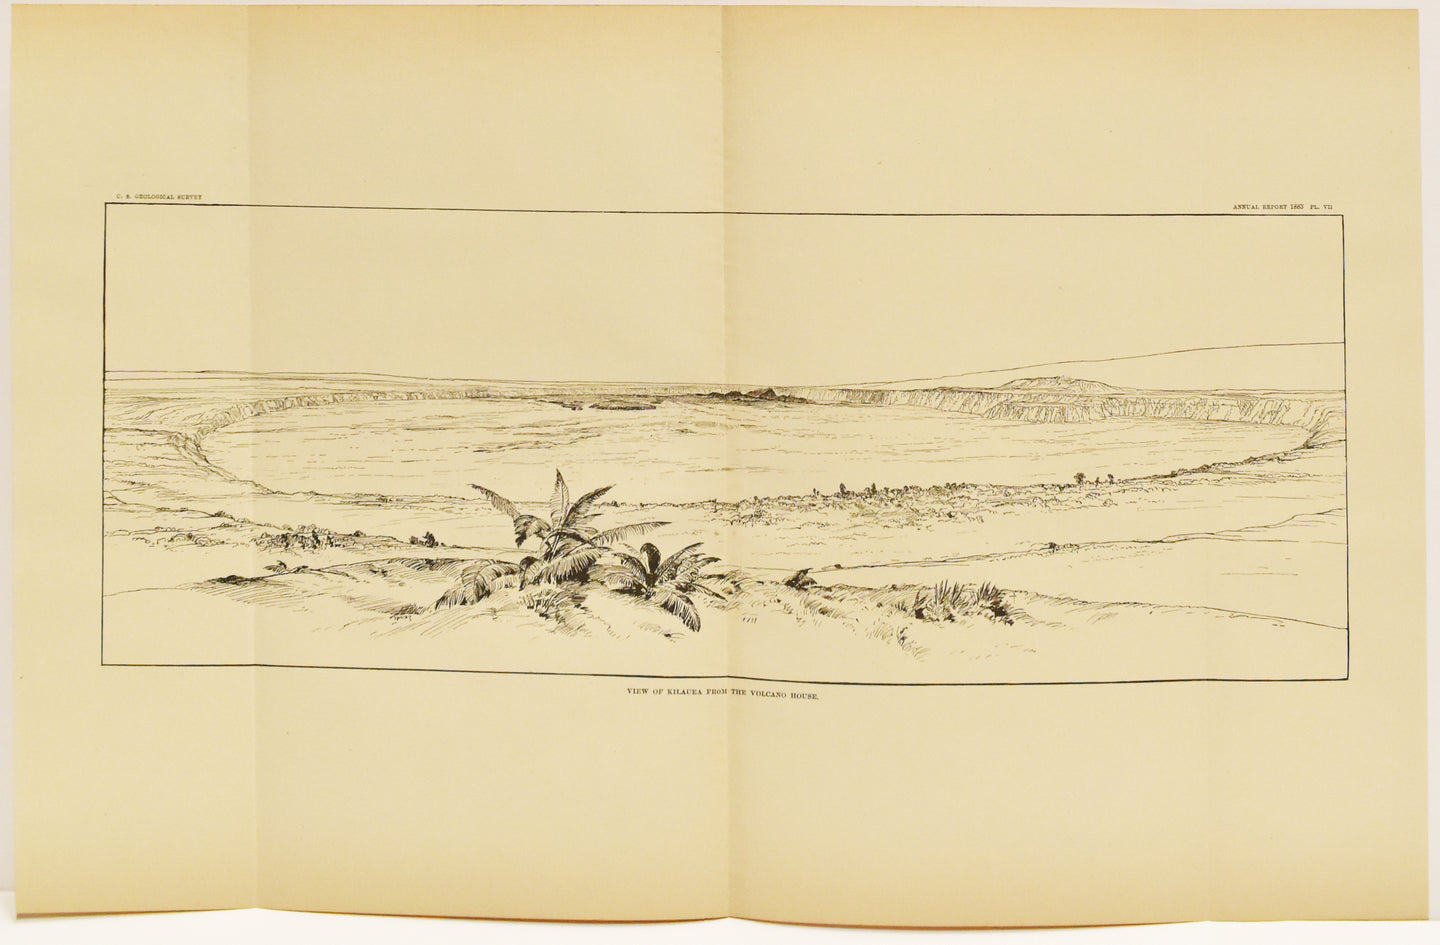 View of Kilauea From The Volcano House: U.S. Geological Survey 1883